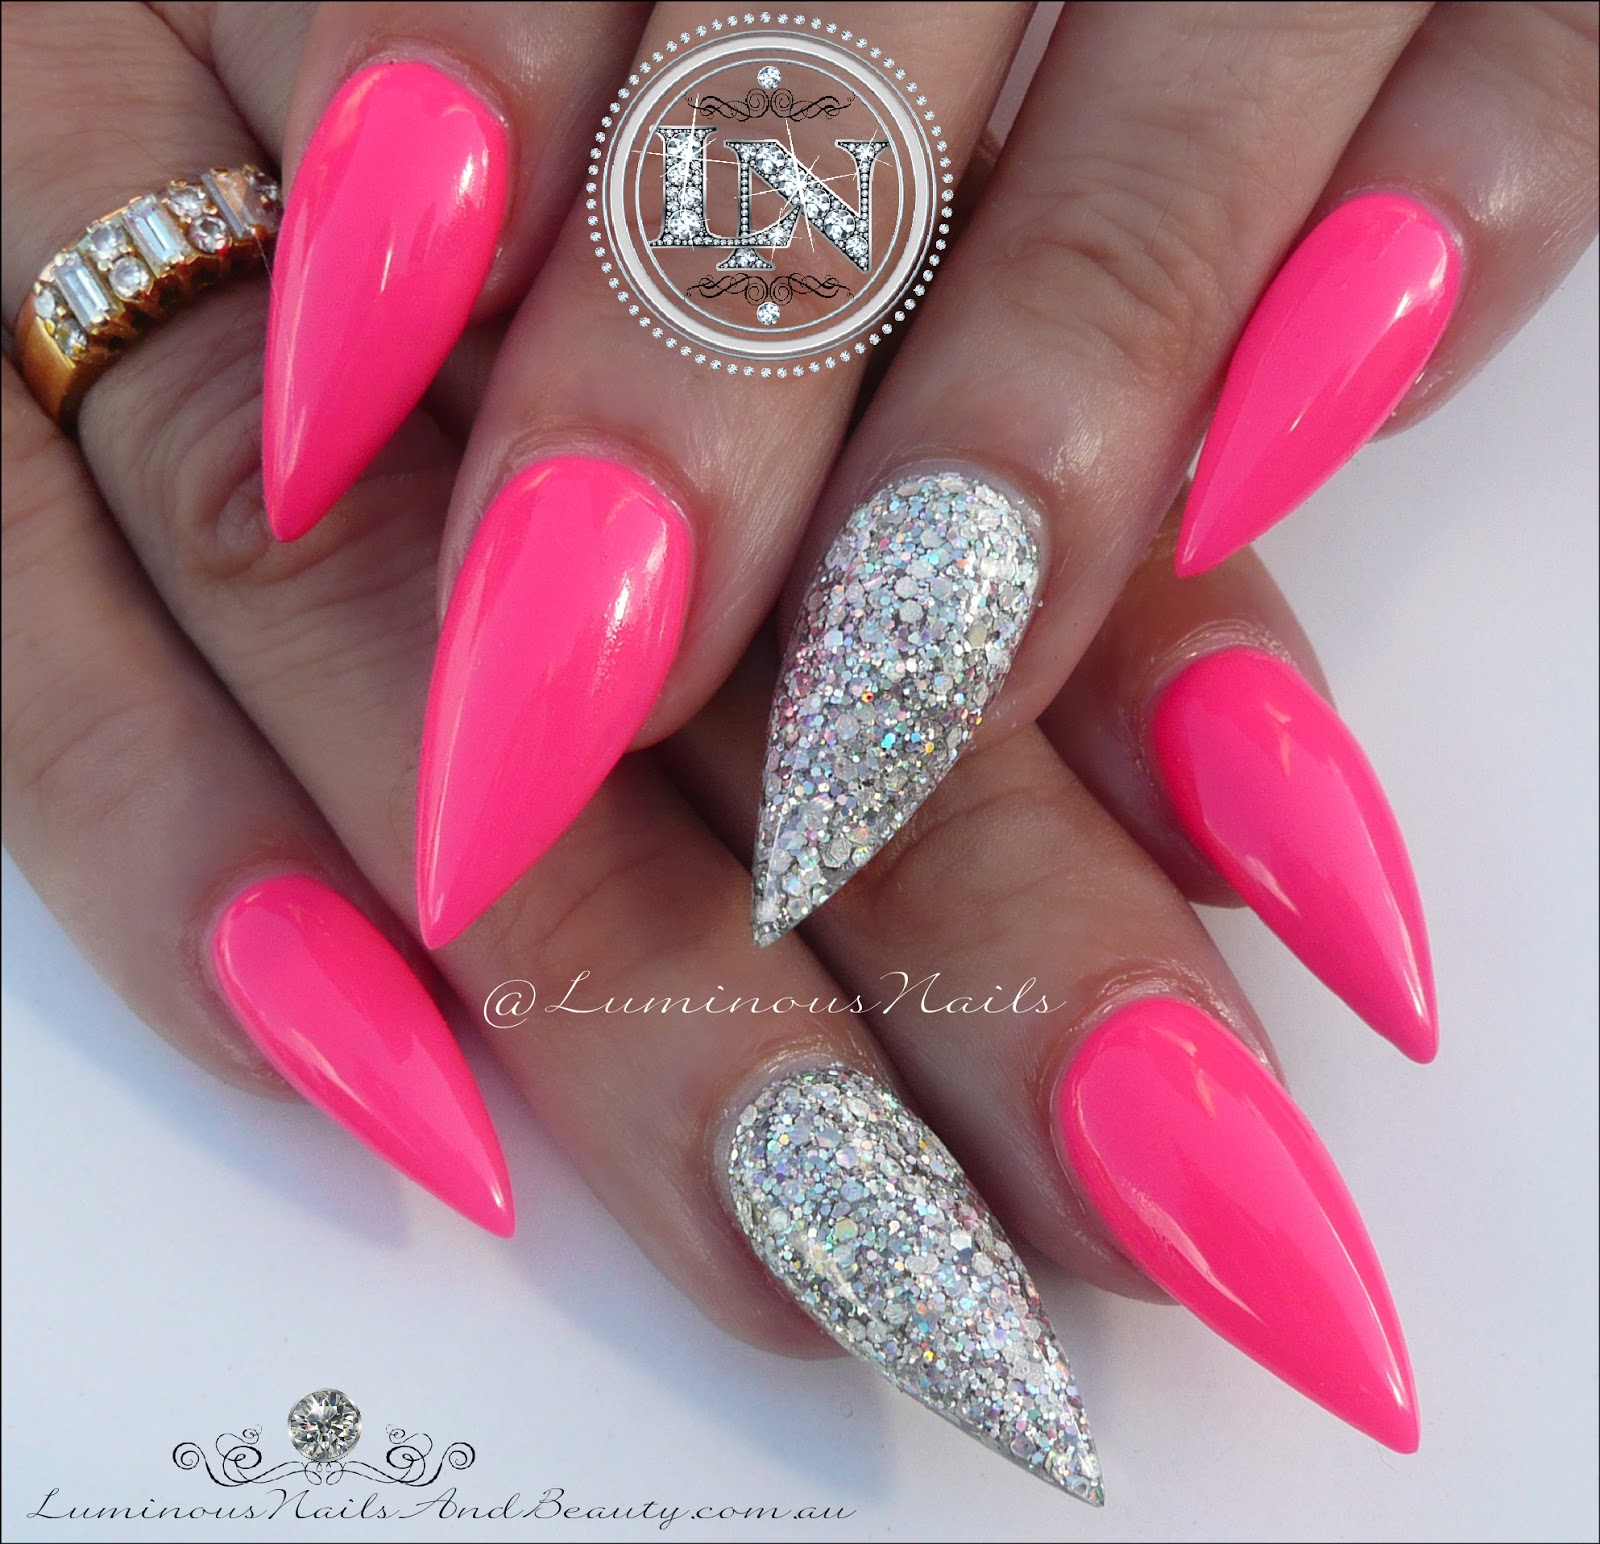 Luminous Nails: Gorgeous Hot Pink & Silver, Sculptured Acrylic ...